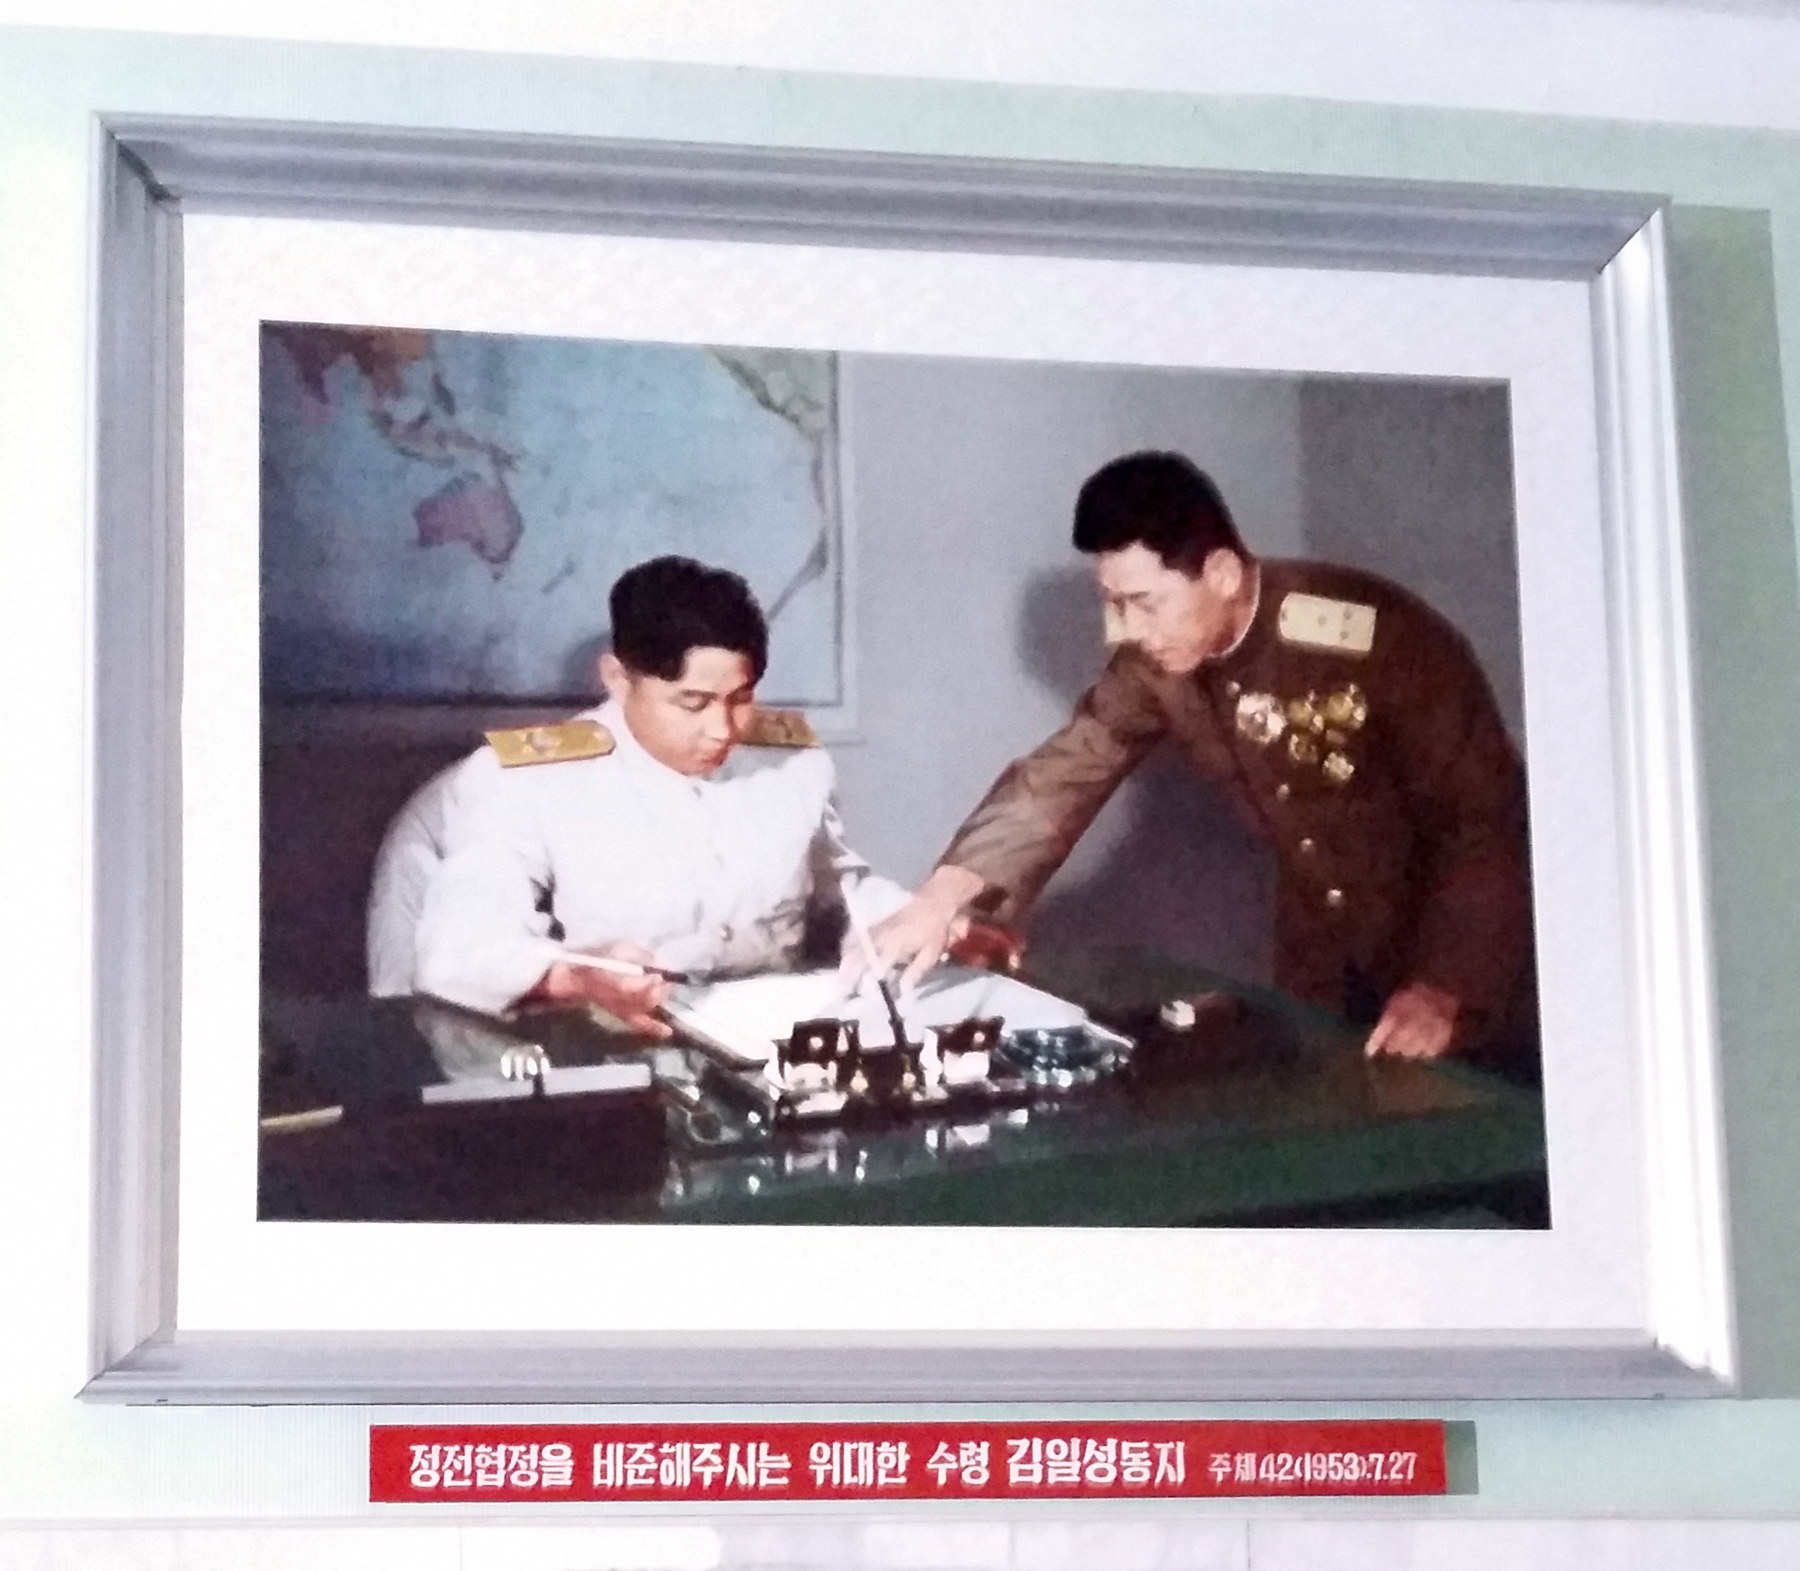 Il-sung or Jong-un? Only by reading the caption can we know for sure.